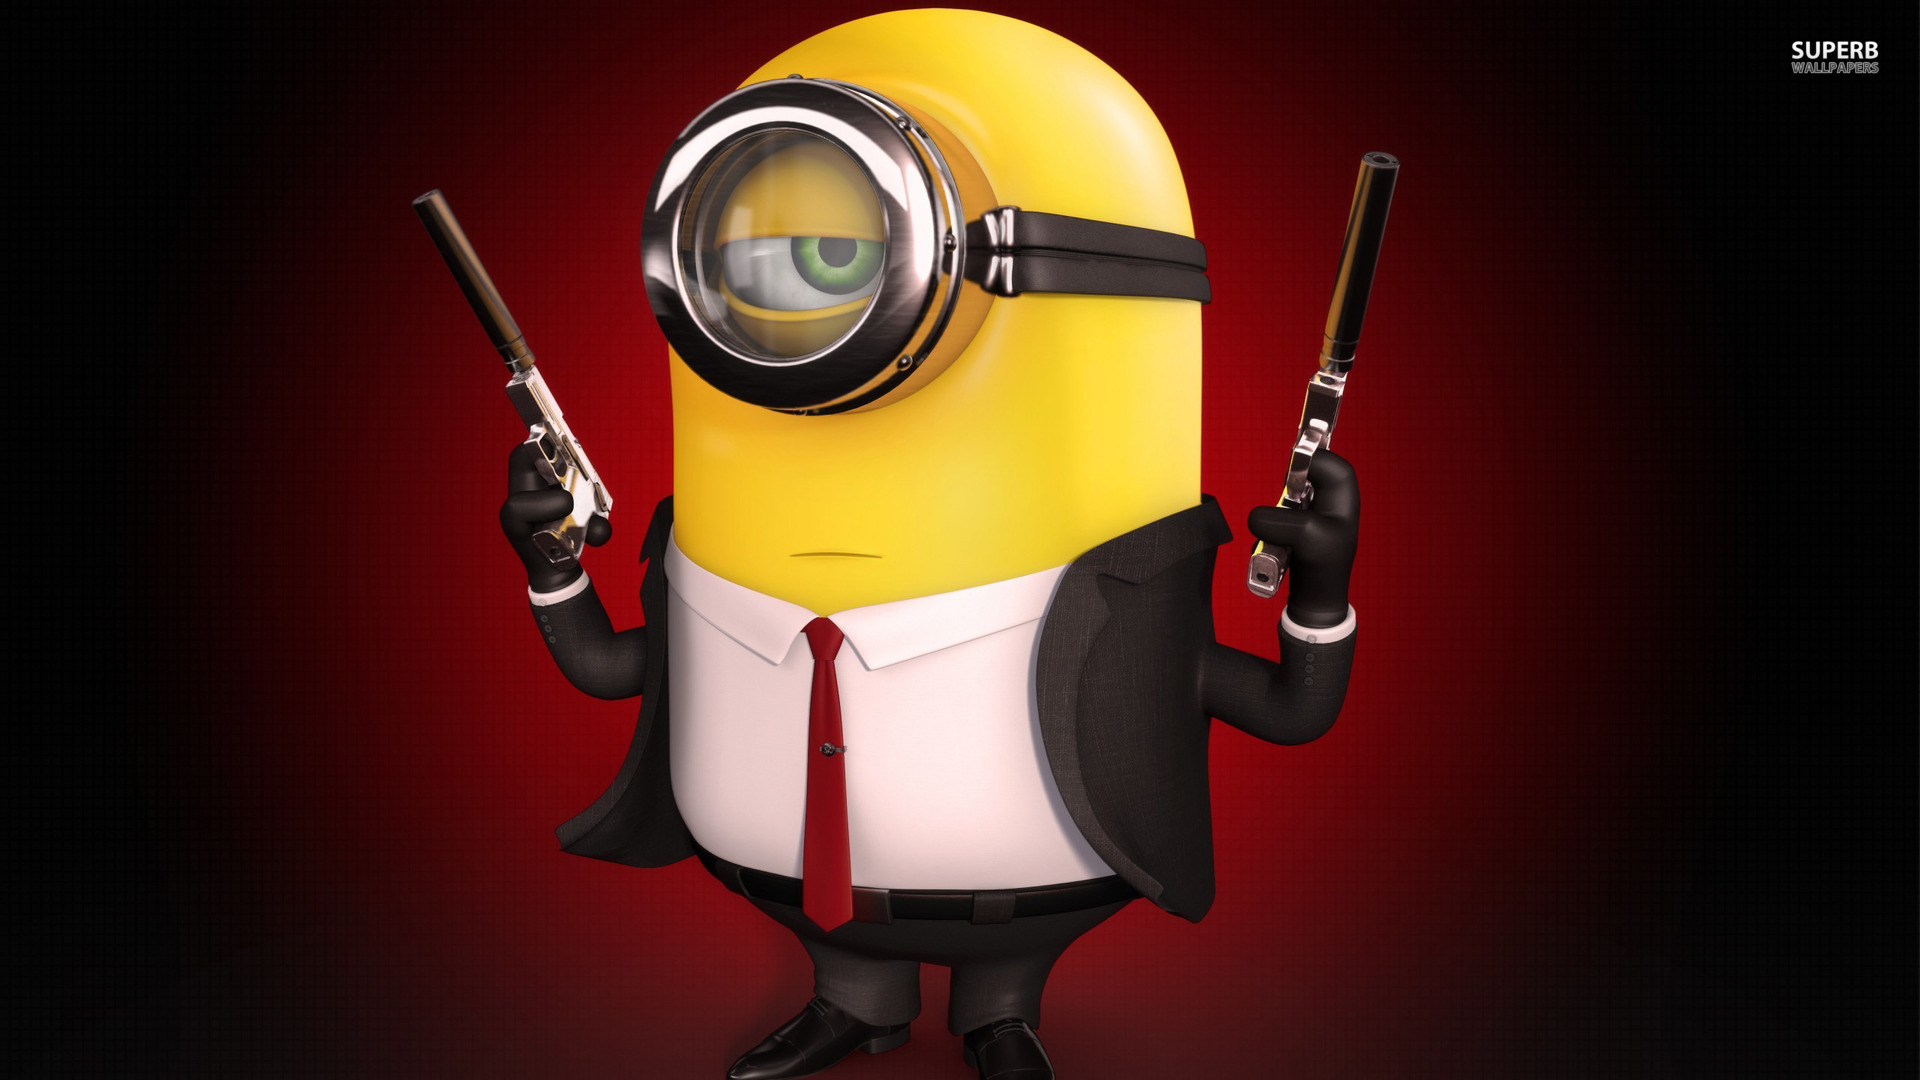 Despicable me hitman minion